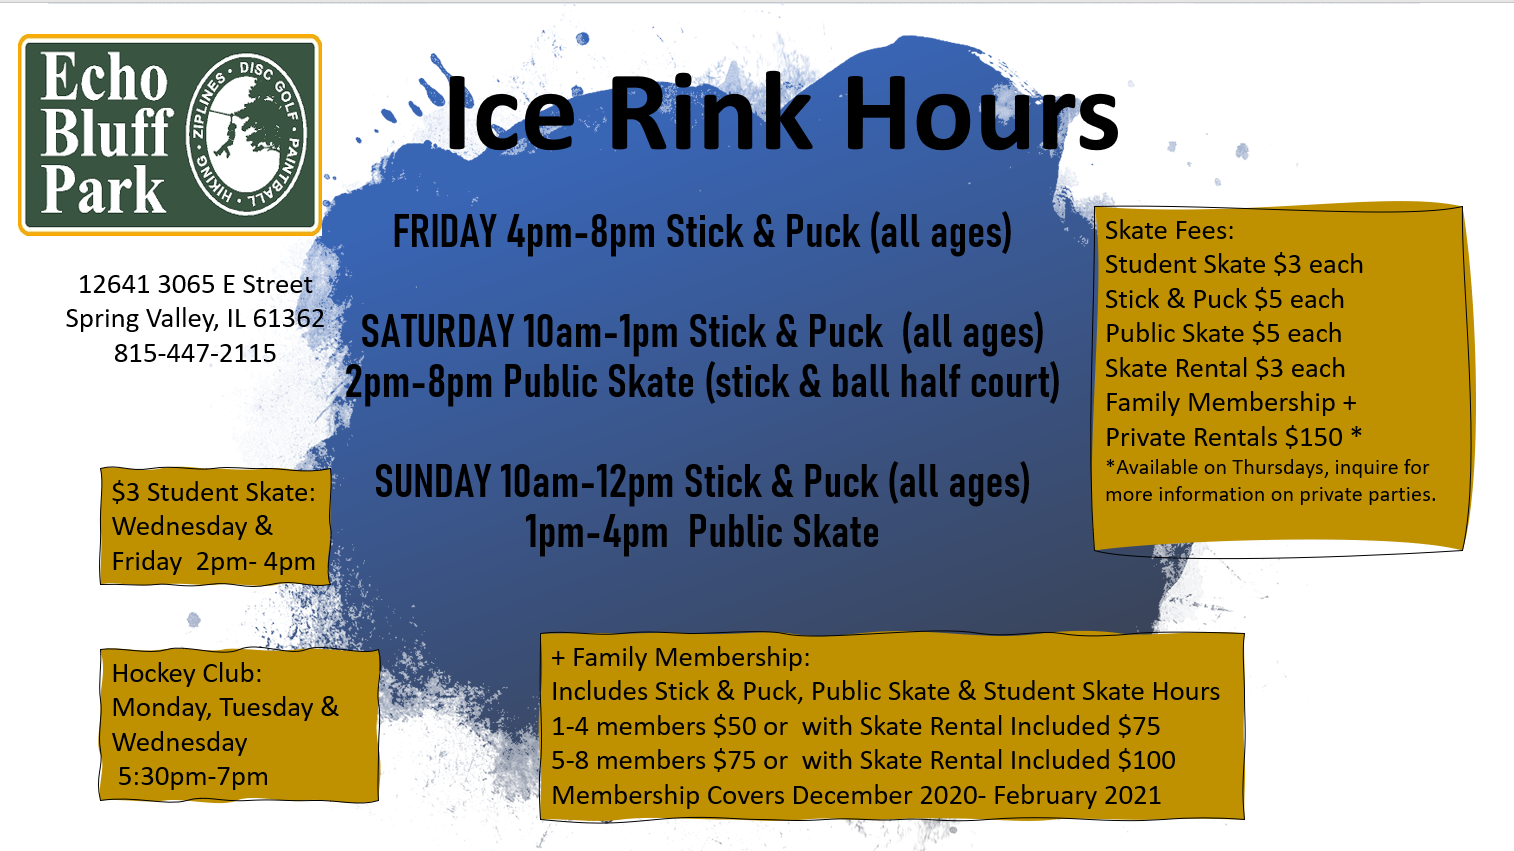 Skate Schedule PowerPoint 11 9 2020 10 56 05 AM 2